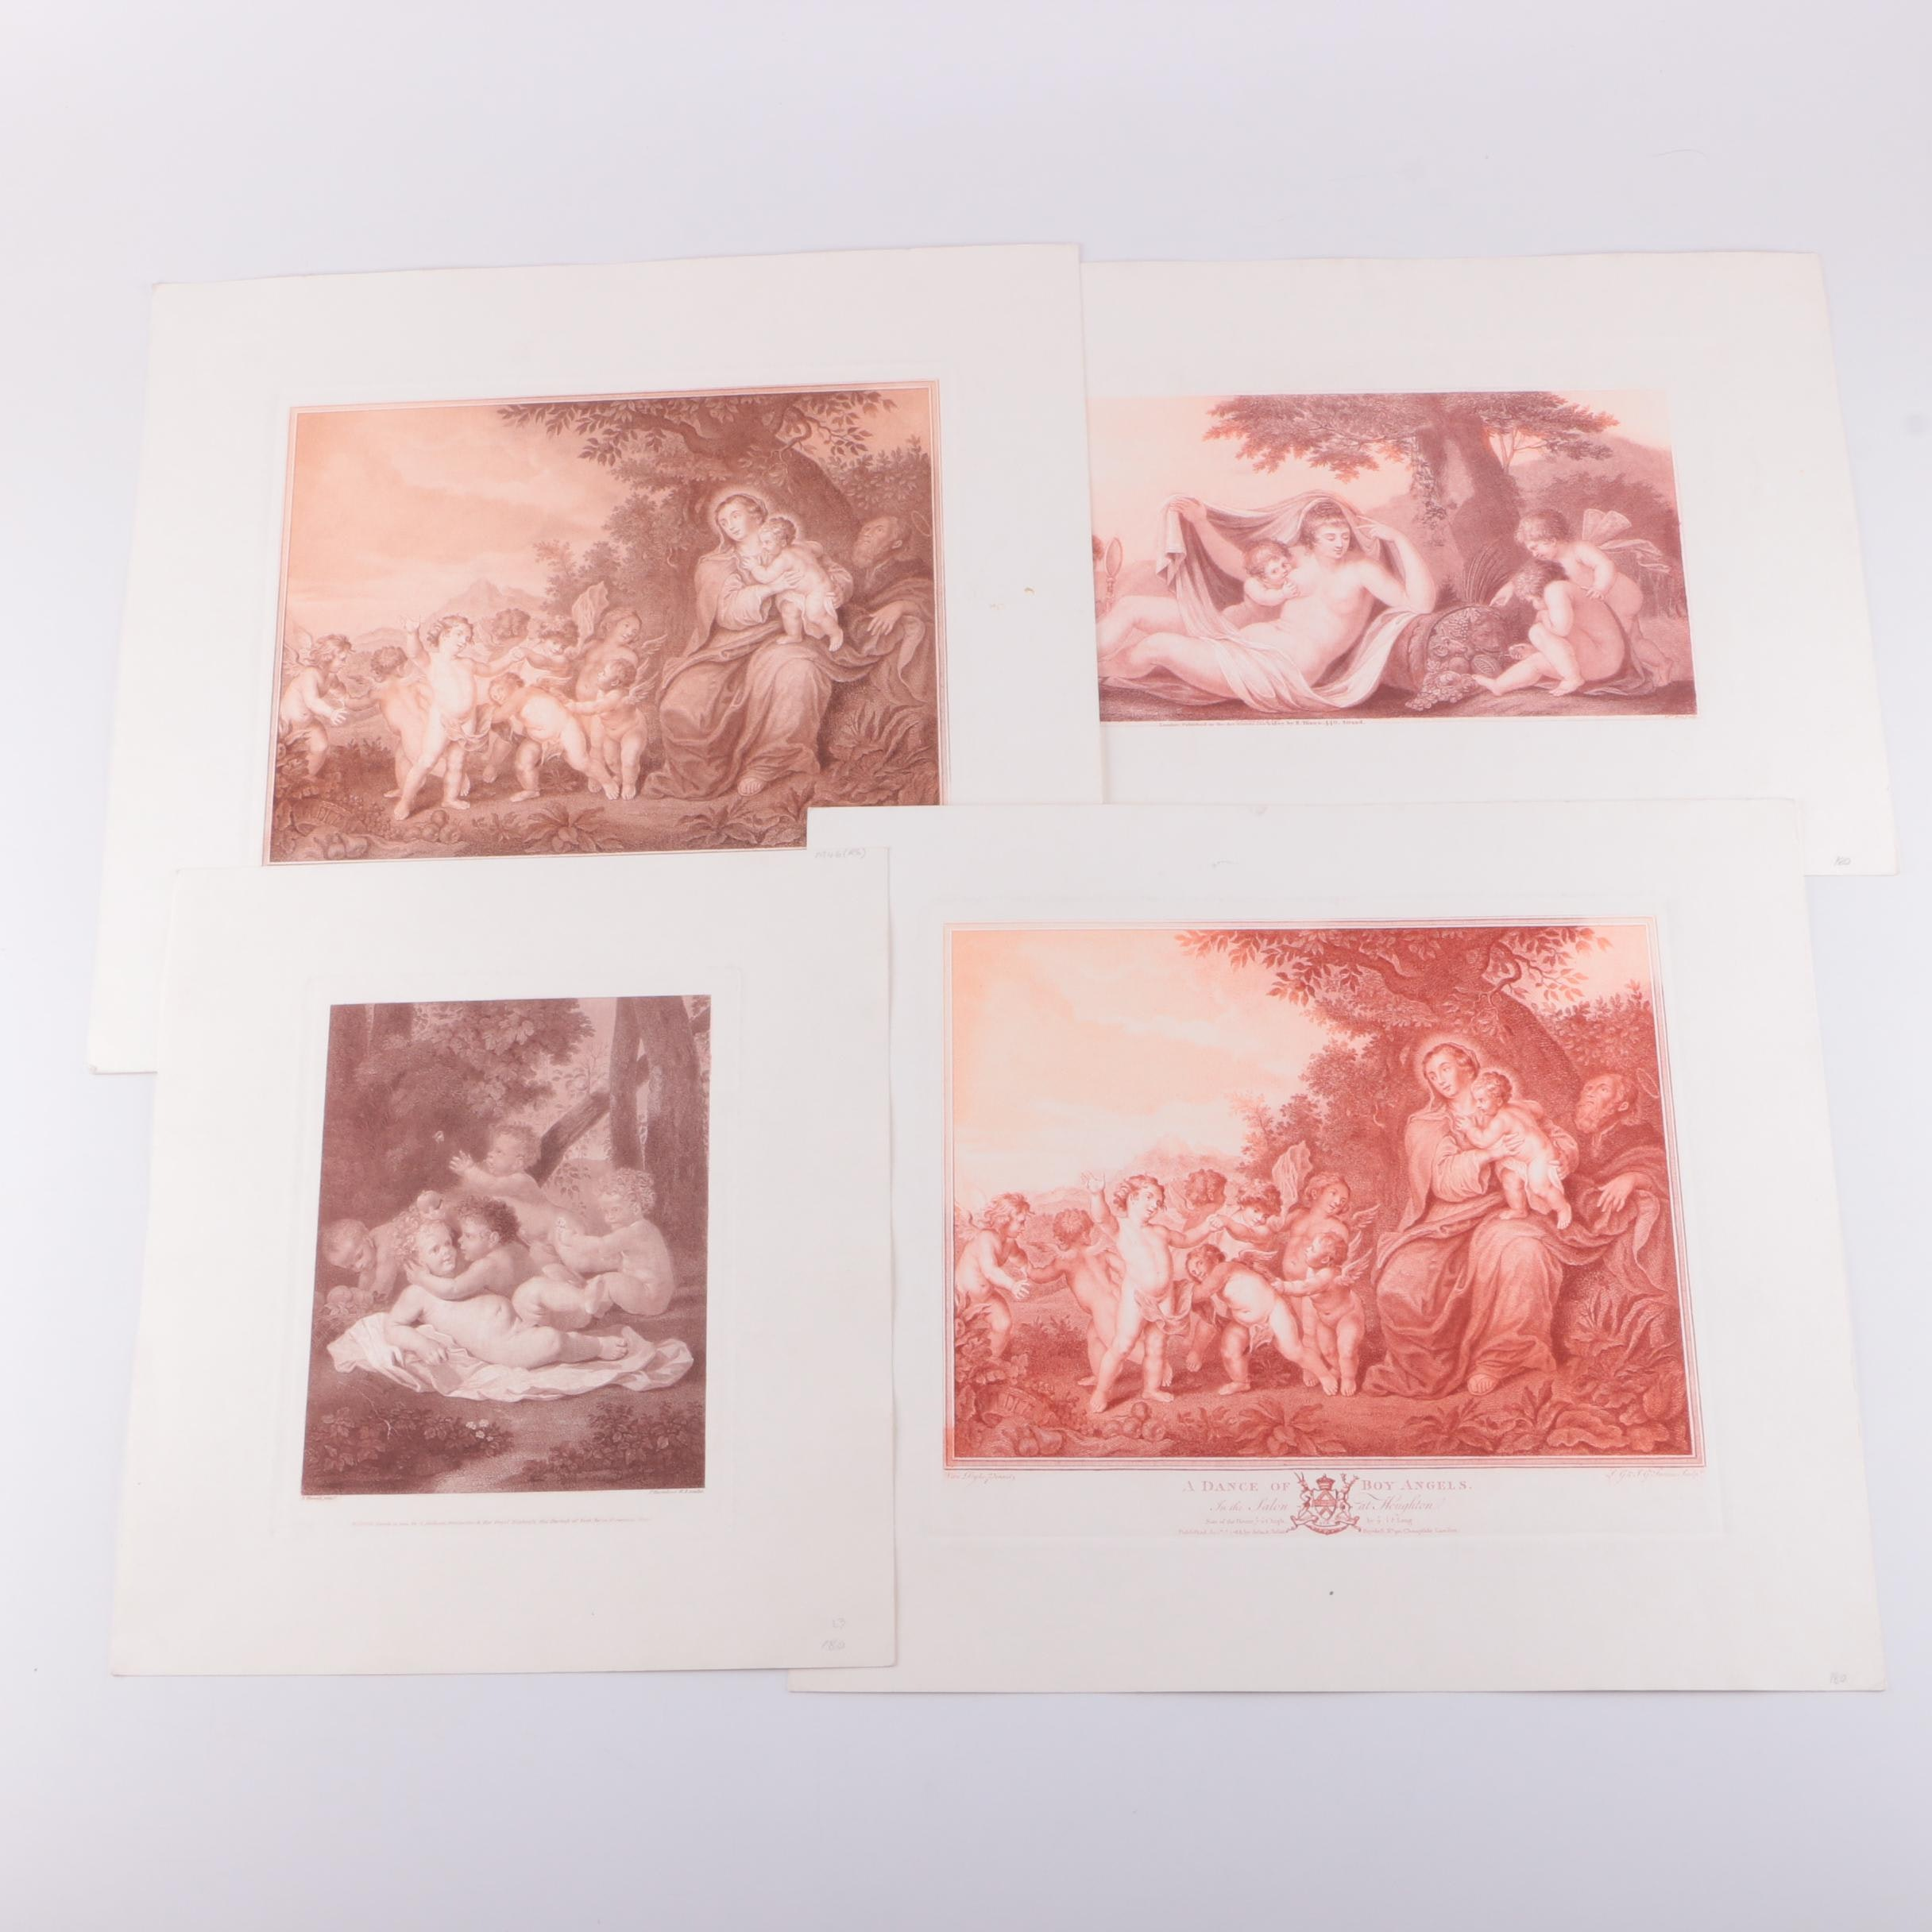 Hand-Colored Engravings After Classical Compositions